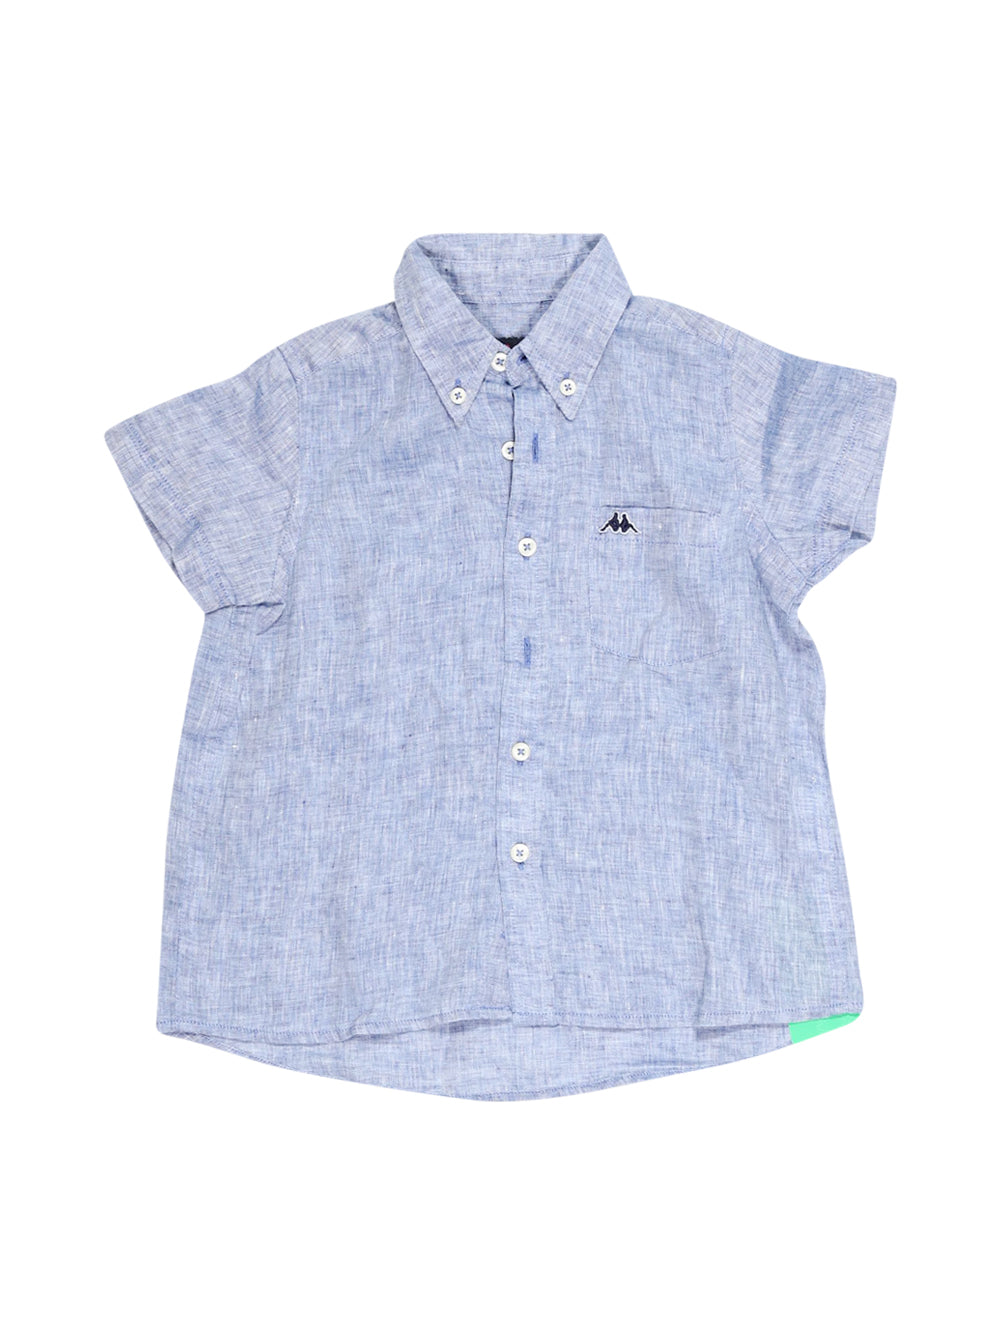 Front photo of Preloved Robe Di Kappa Blue Boy's shirt - size 3-4 yrs